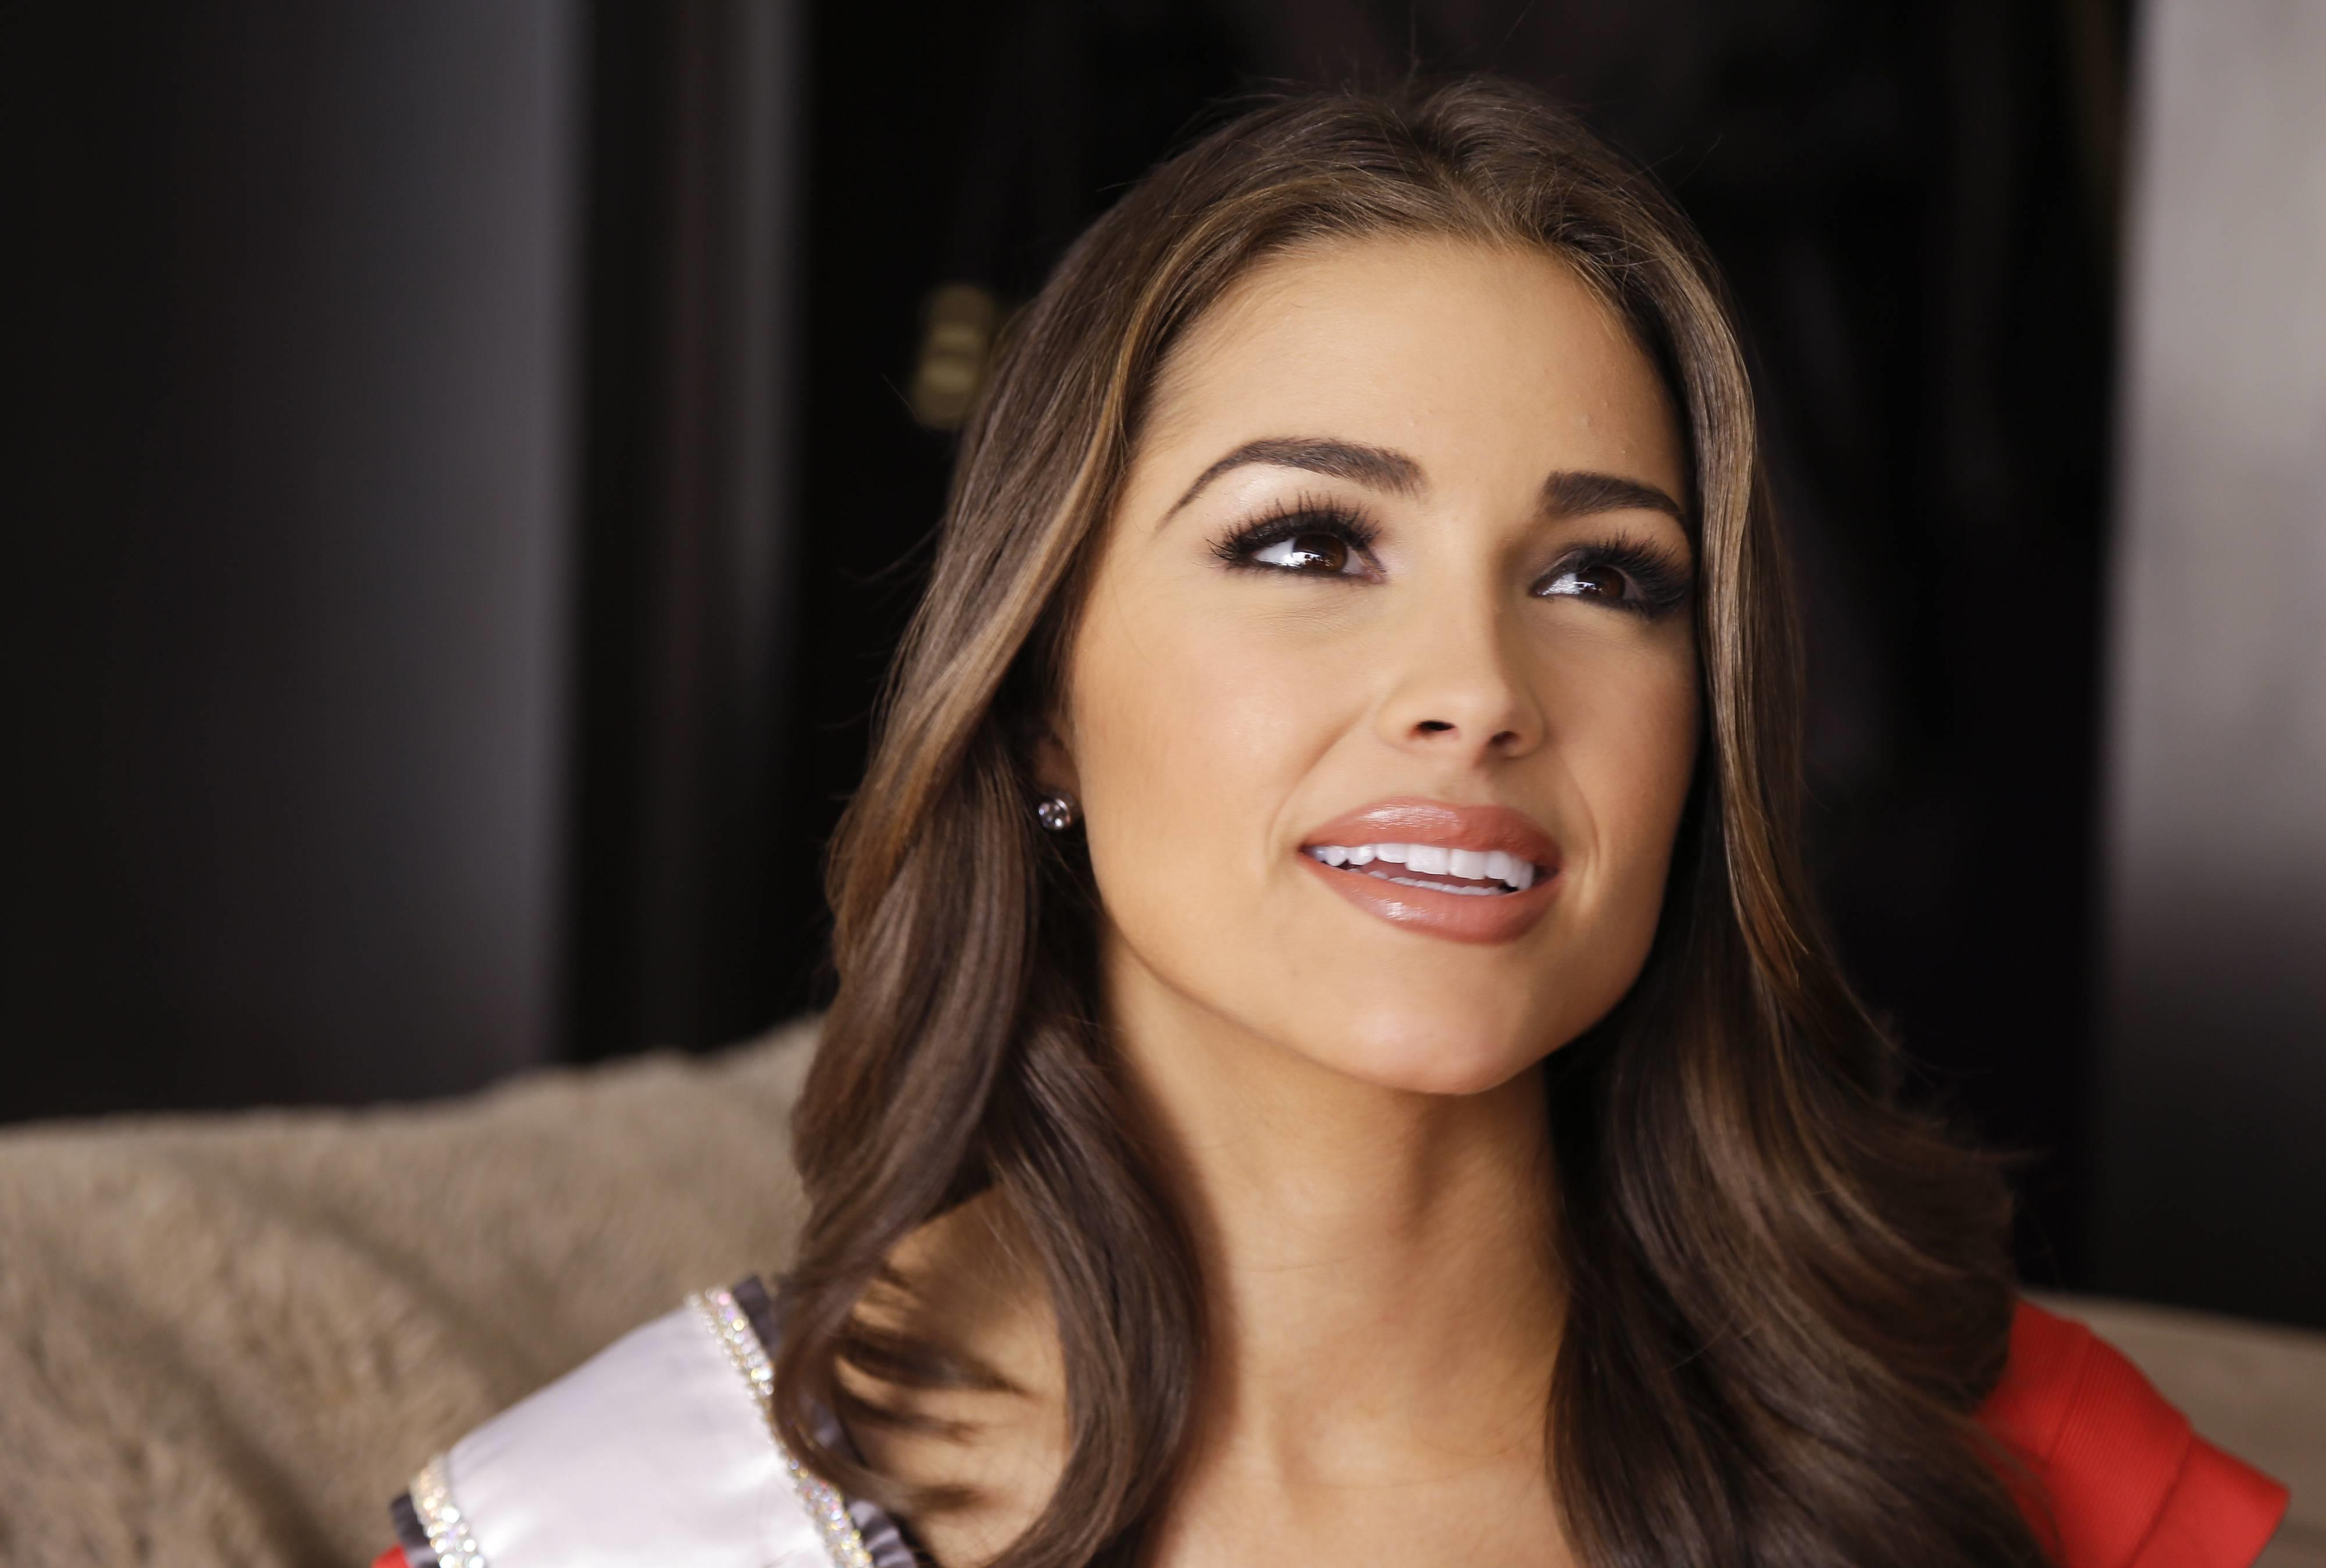 Olivia Culpo during an interview the morning after winning the Miss Universe pageant (Dec 20, 2012)